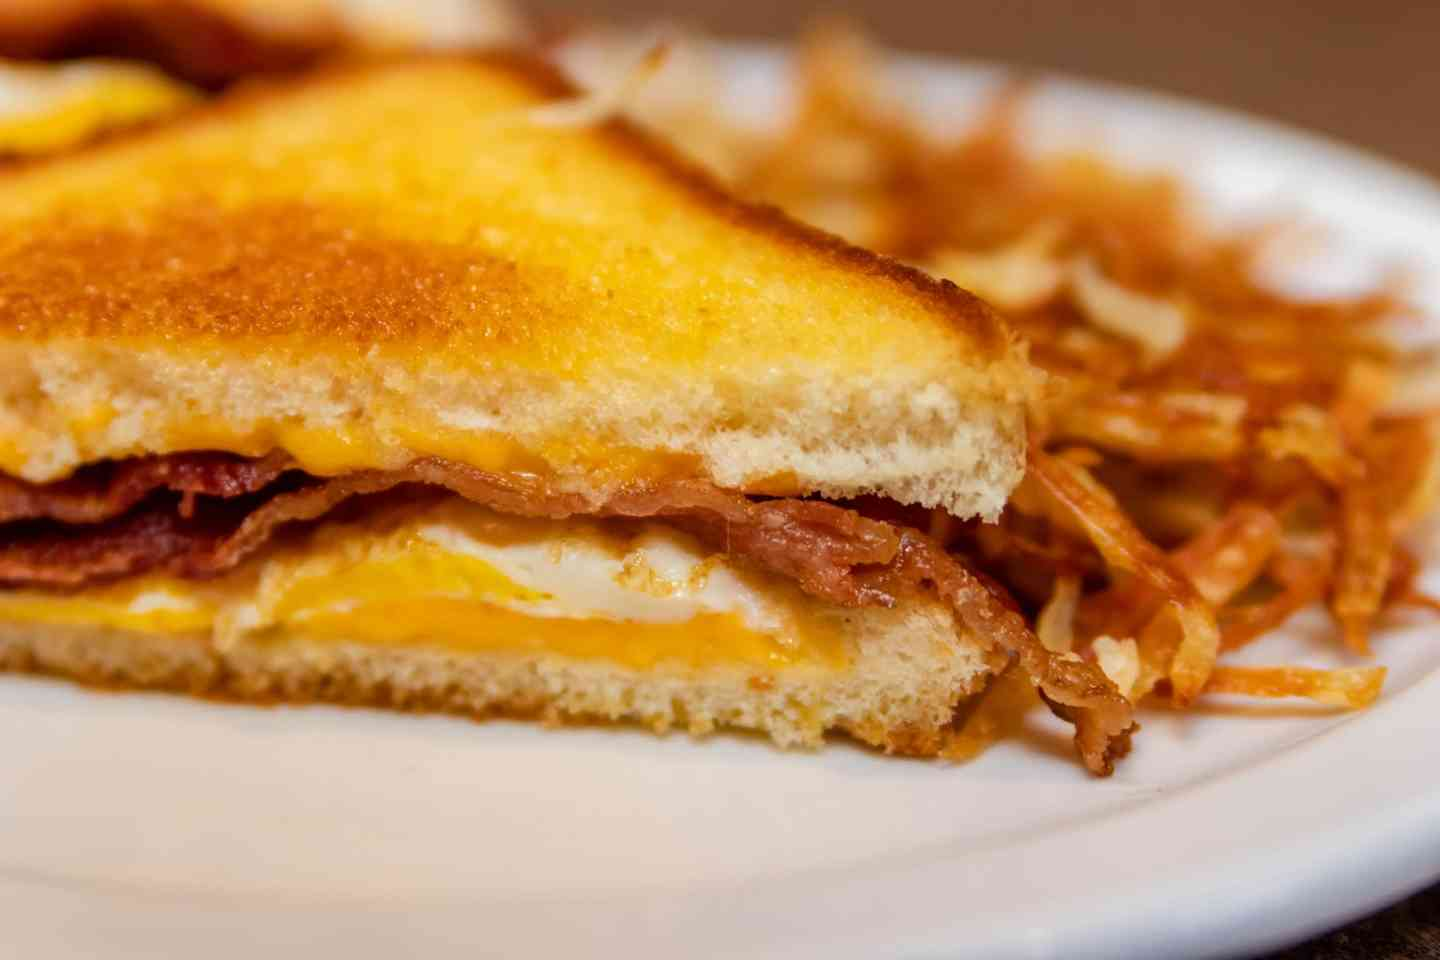 Grilled Breakfast Sandwich